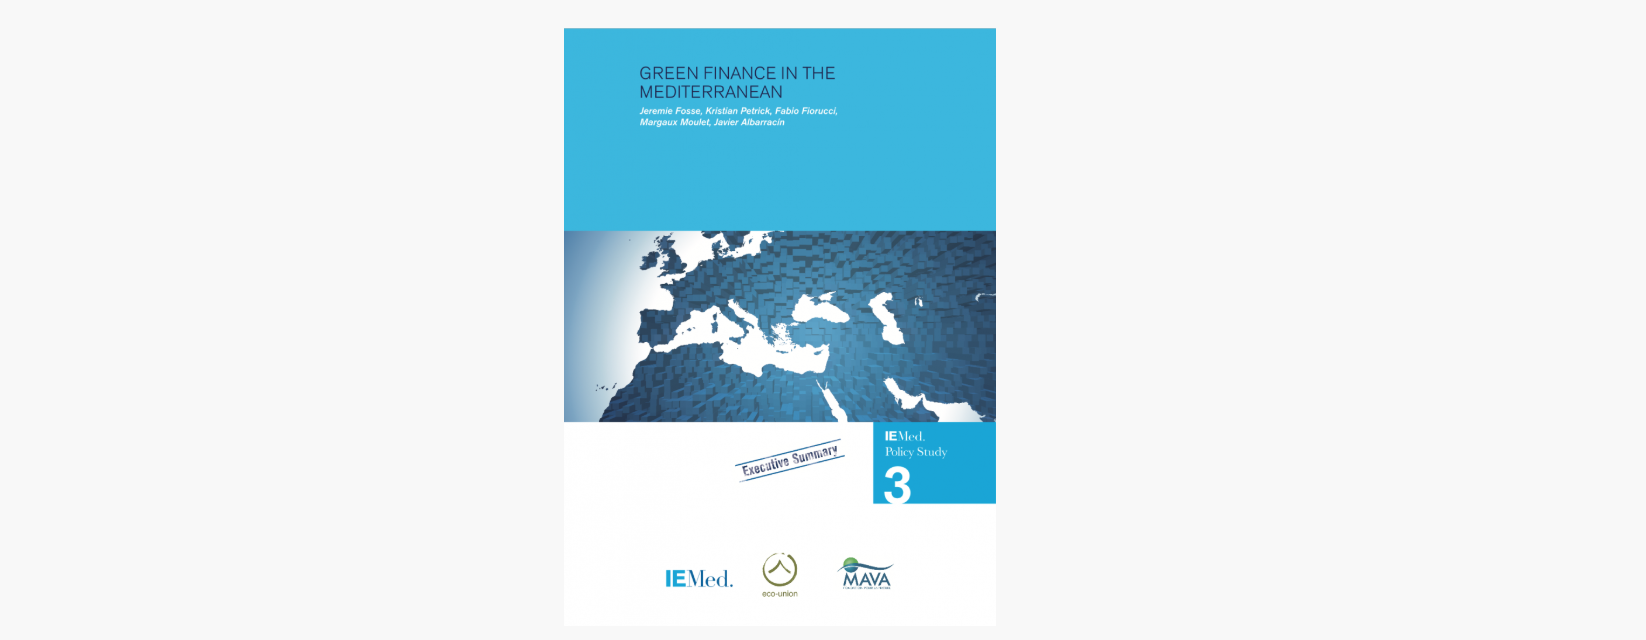 The final version of Green Finance in the Mediterranean Report has been published